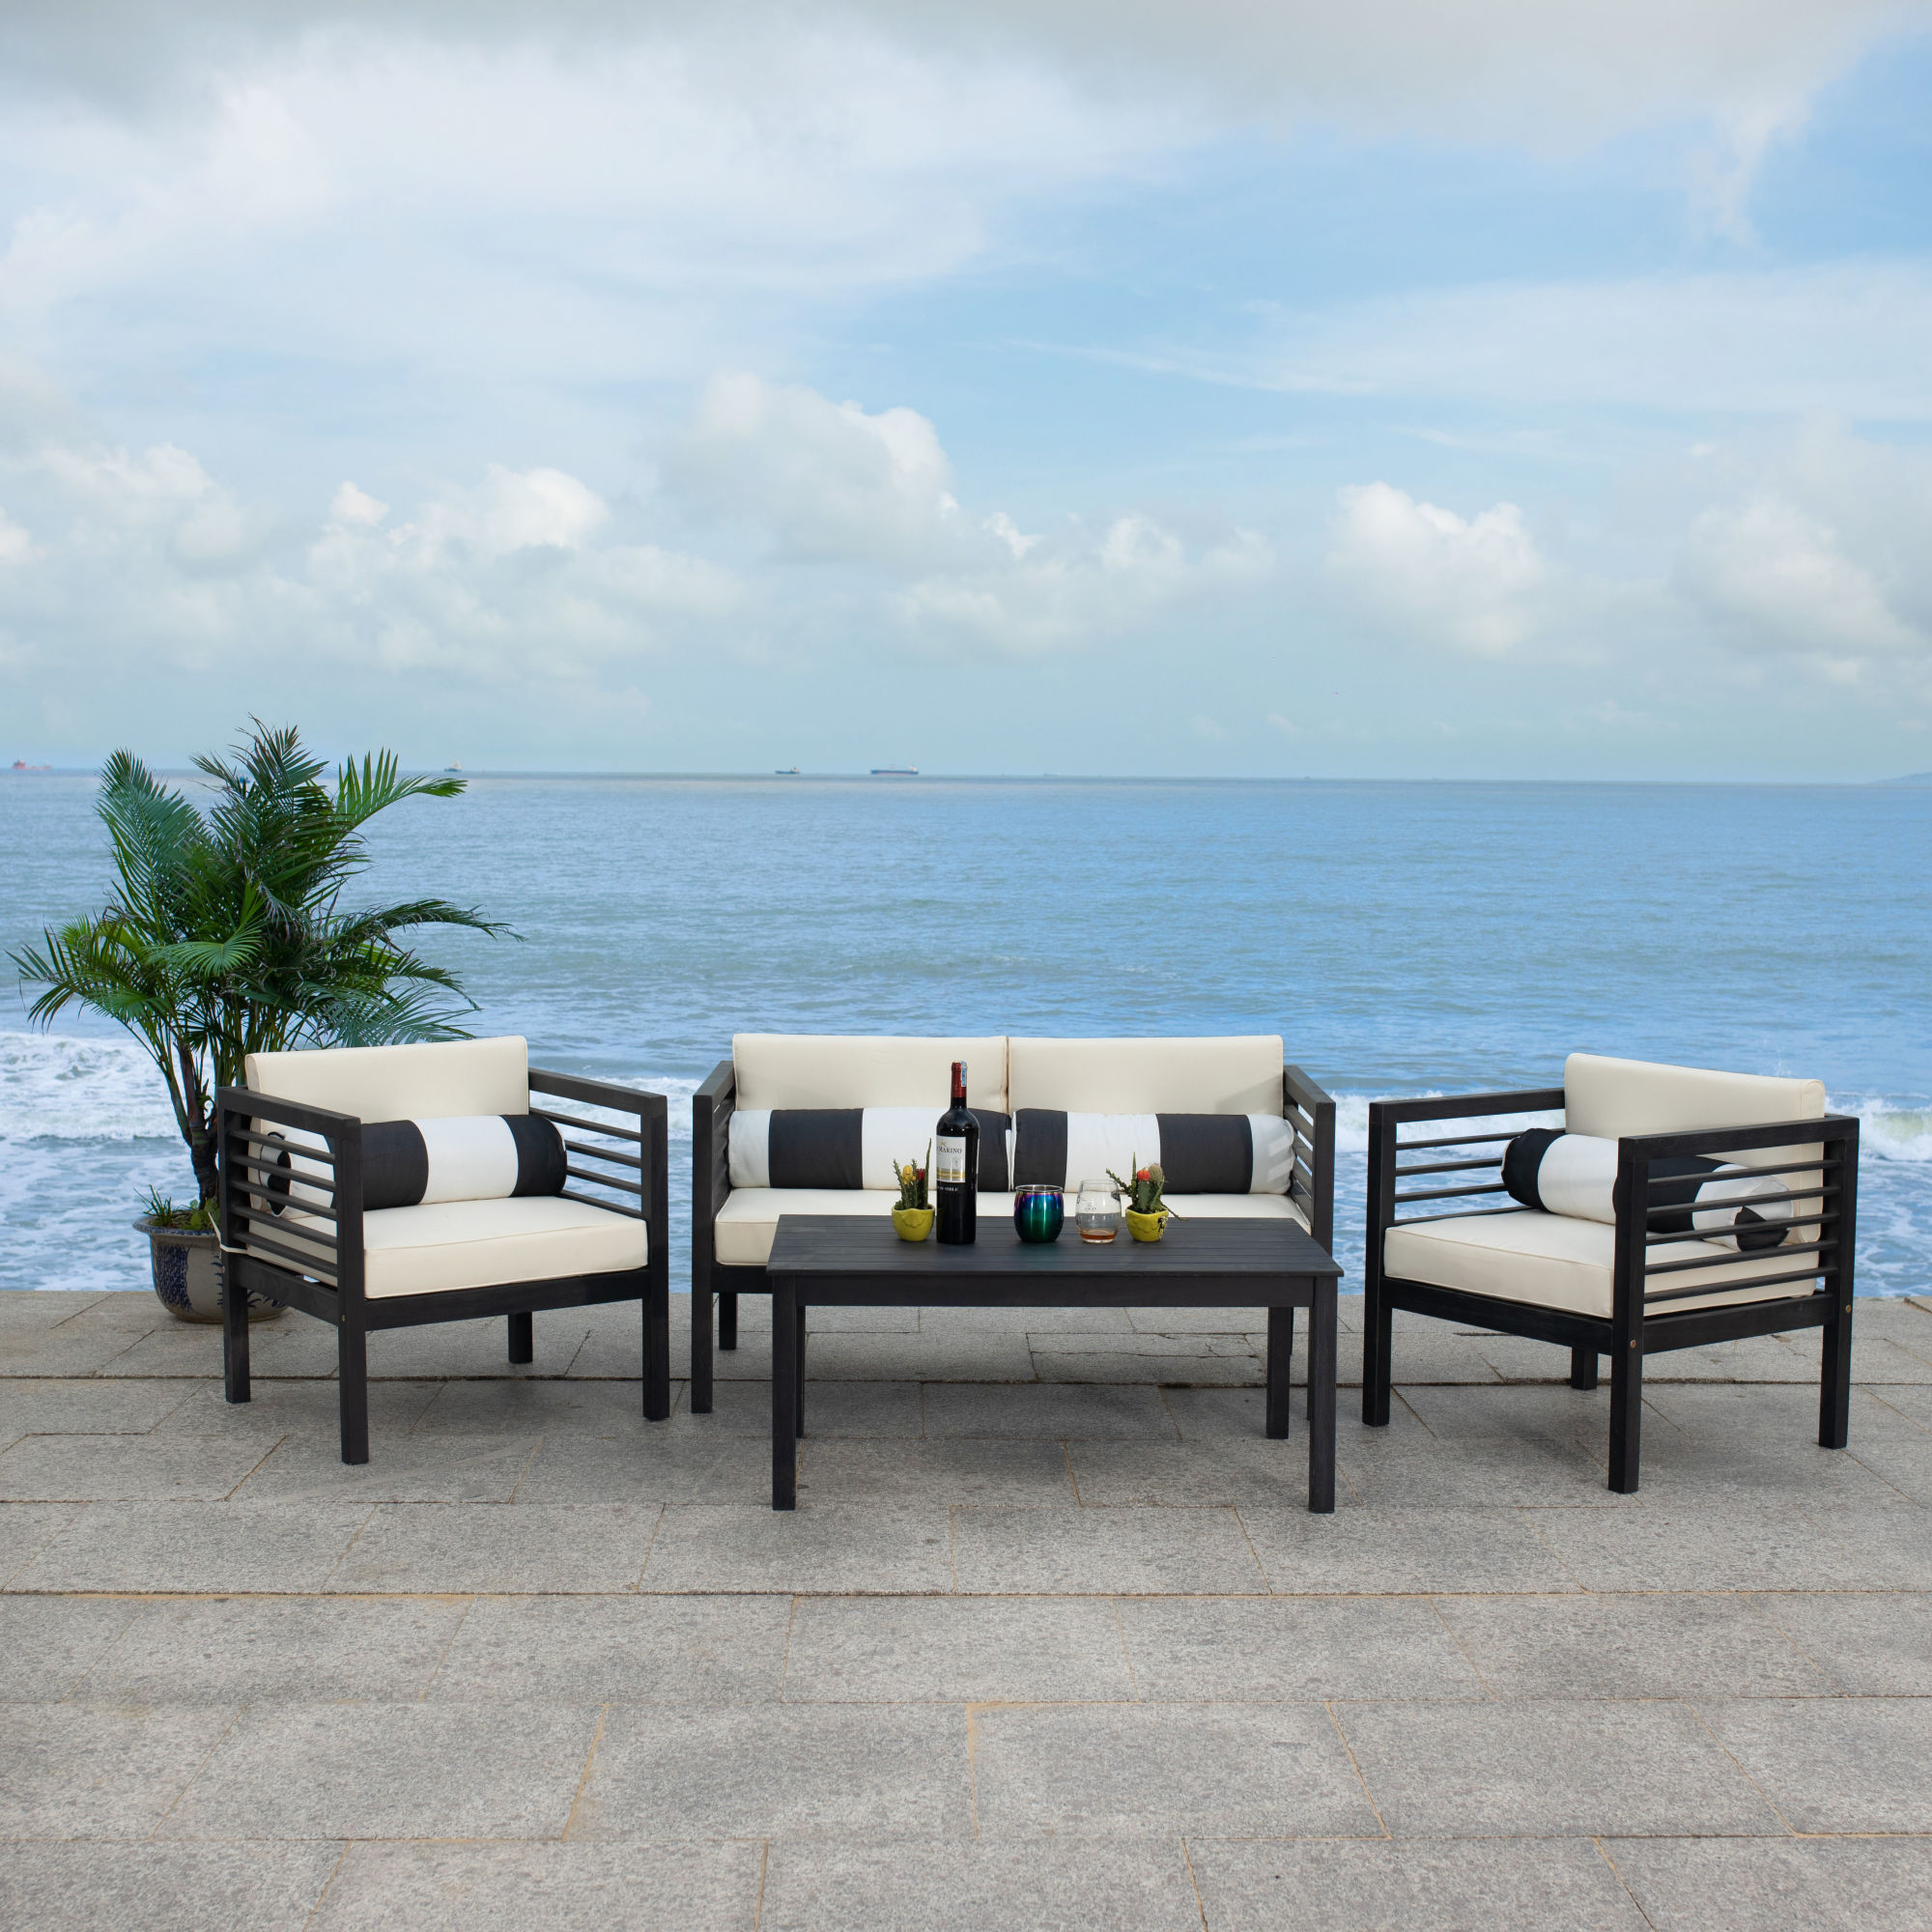 Alda 4 Pc Outdoor Set With Accent Pillows on Safavieh Alda 4Pc Outdoor Set id=90459